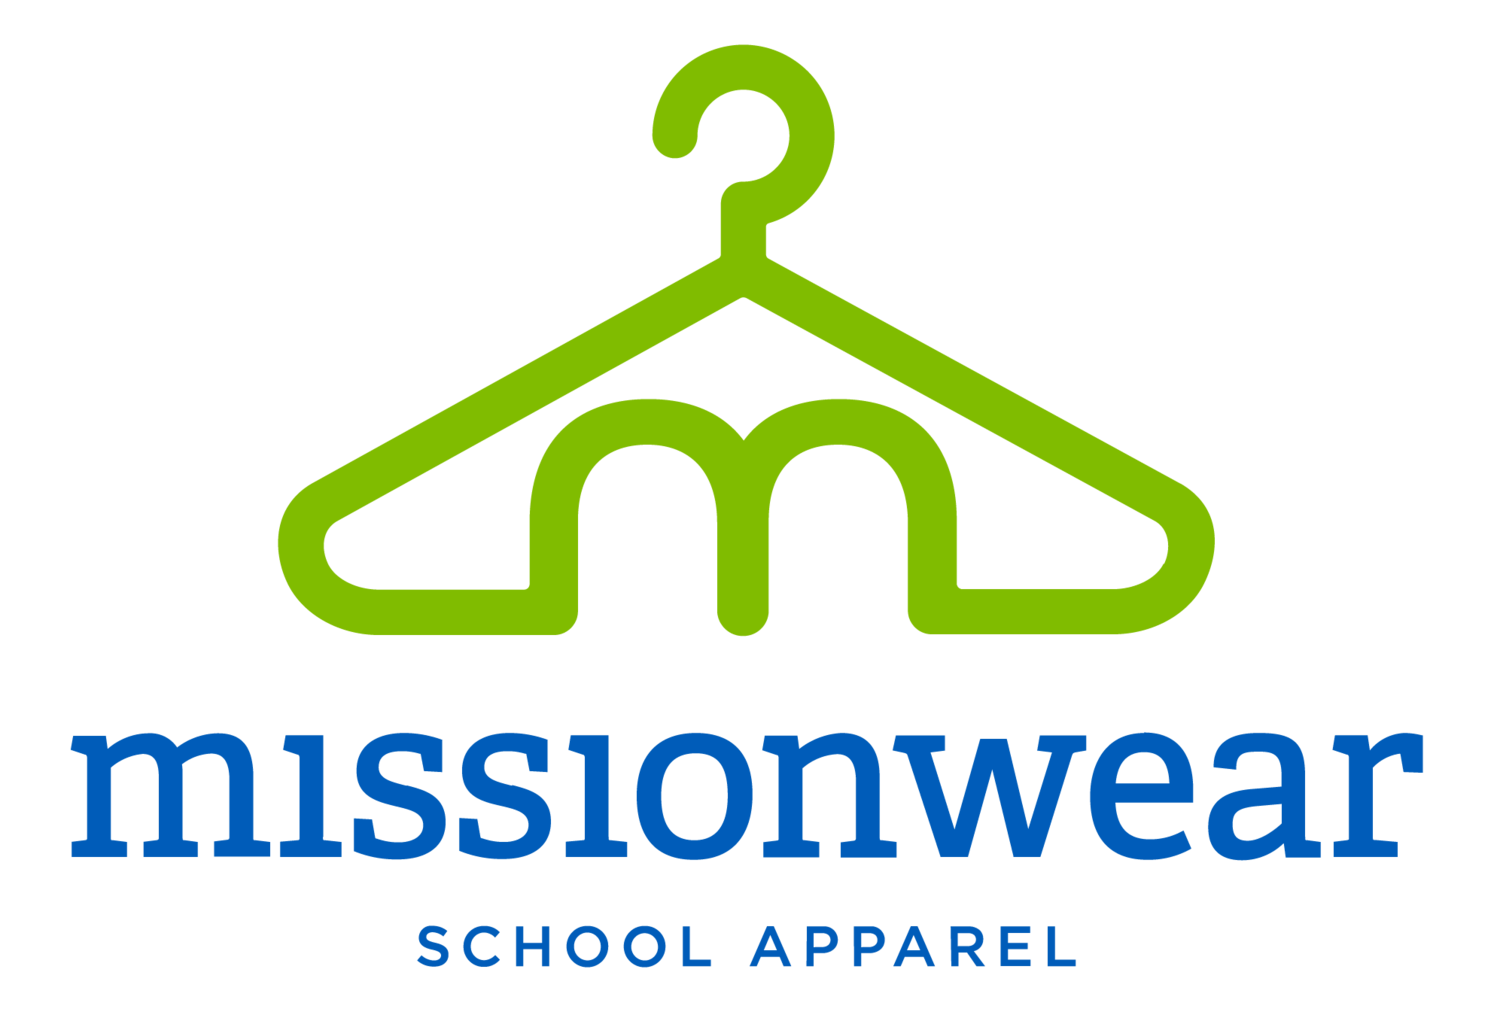 Missionwear School Apparel